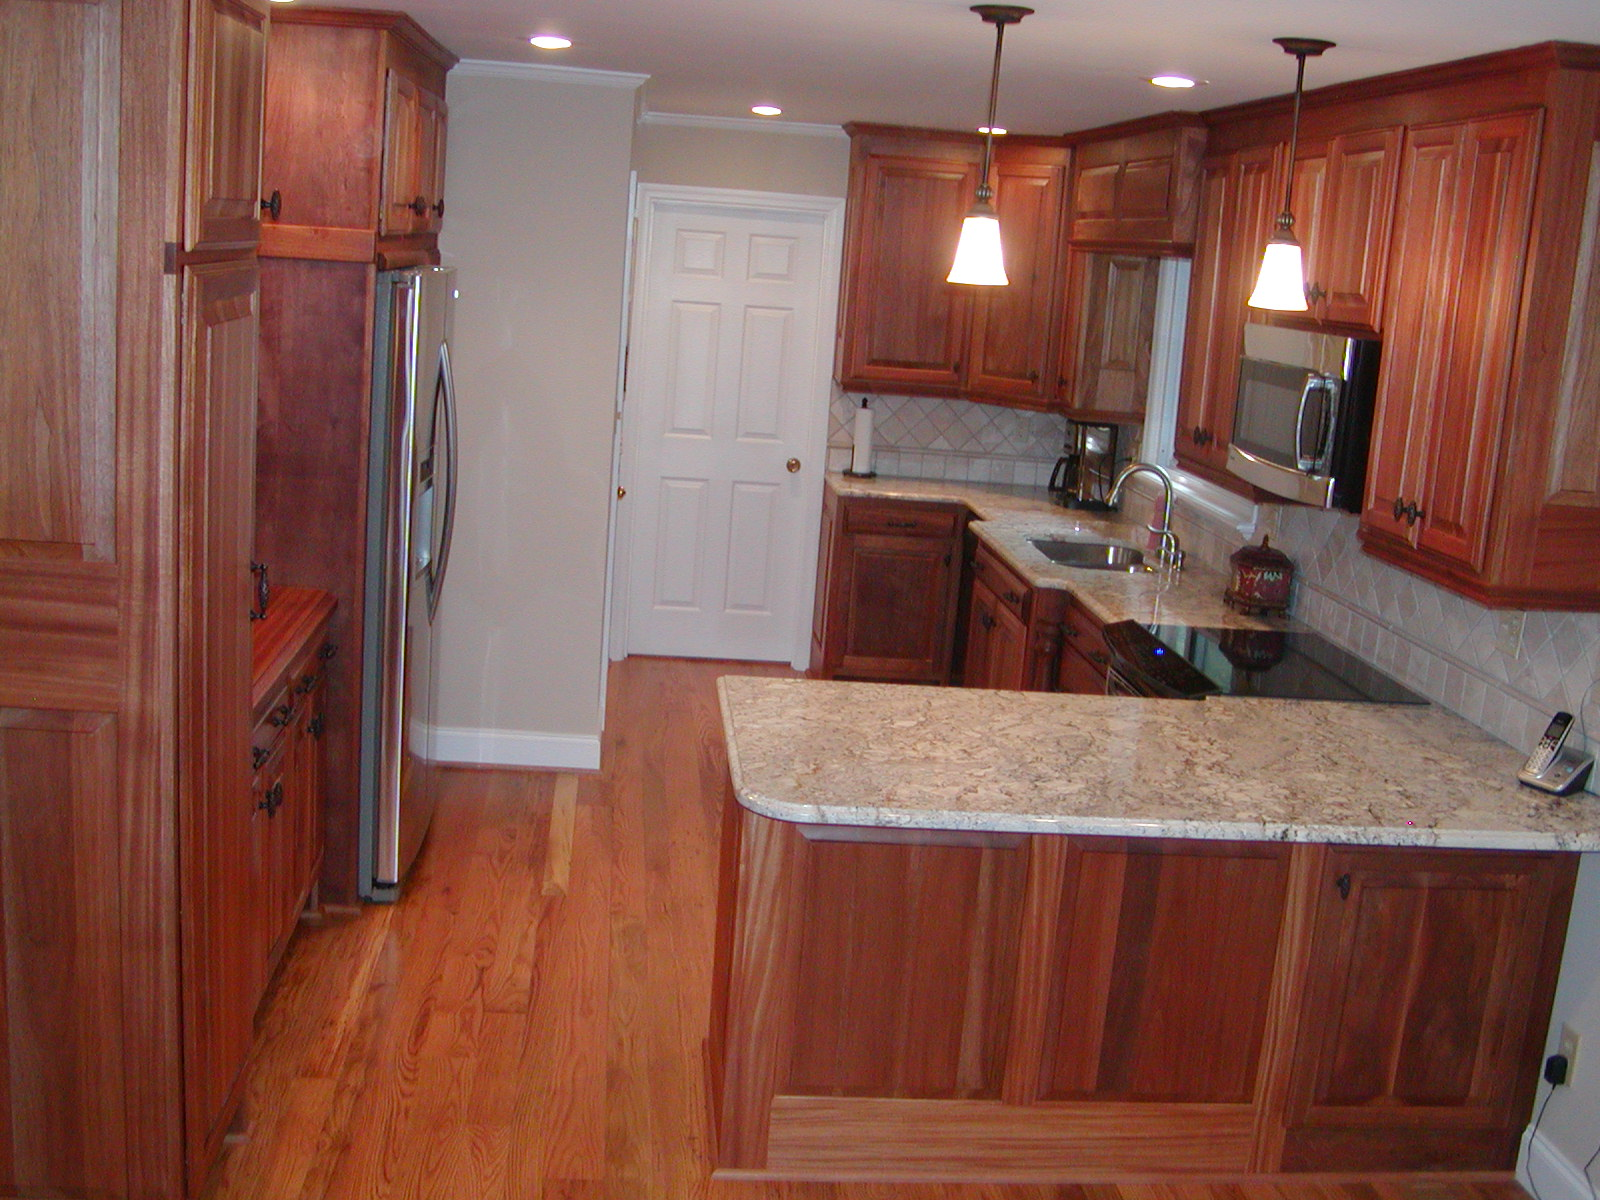 Design In Wood What To Do With Oak Cabinets: Kitchen Remodel (AFTER)